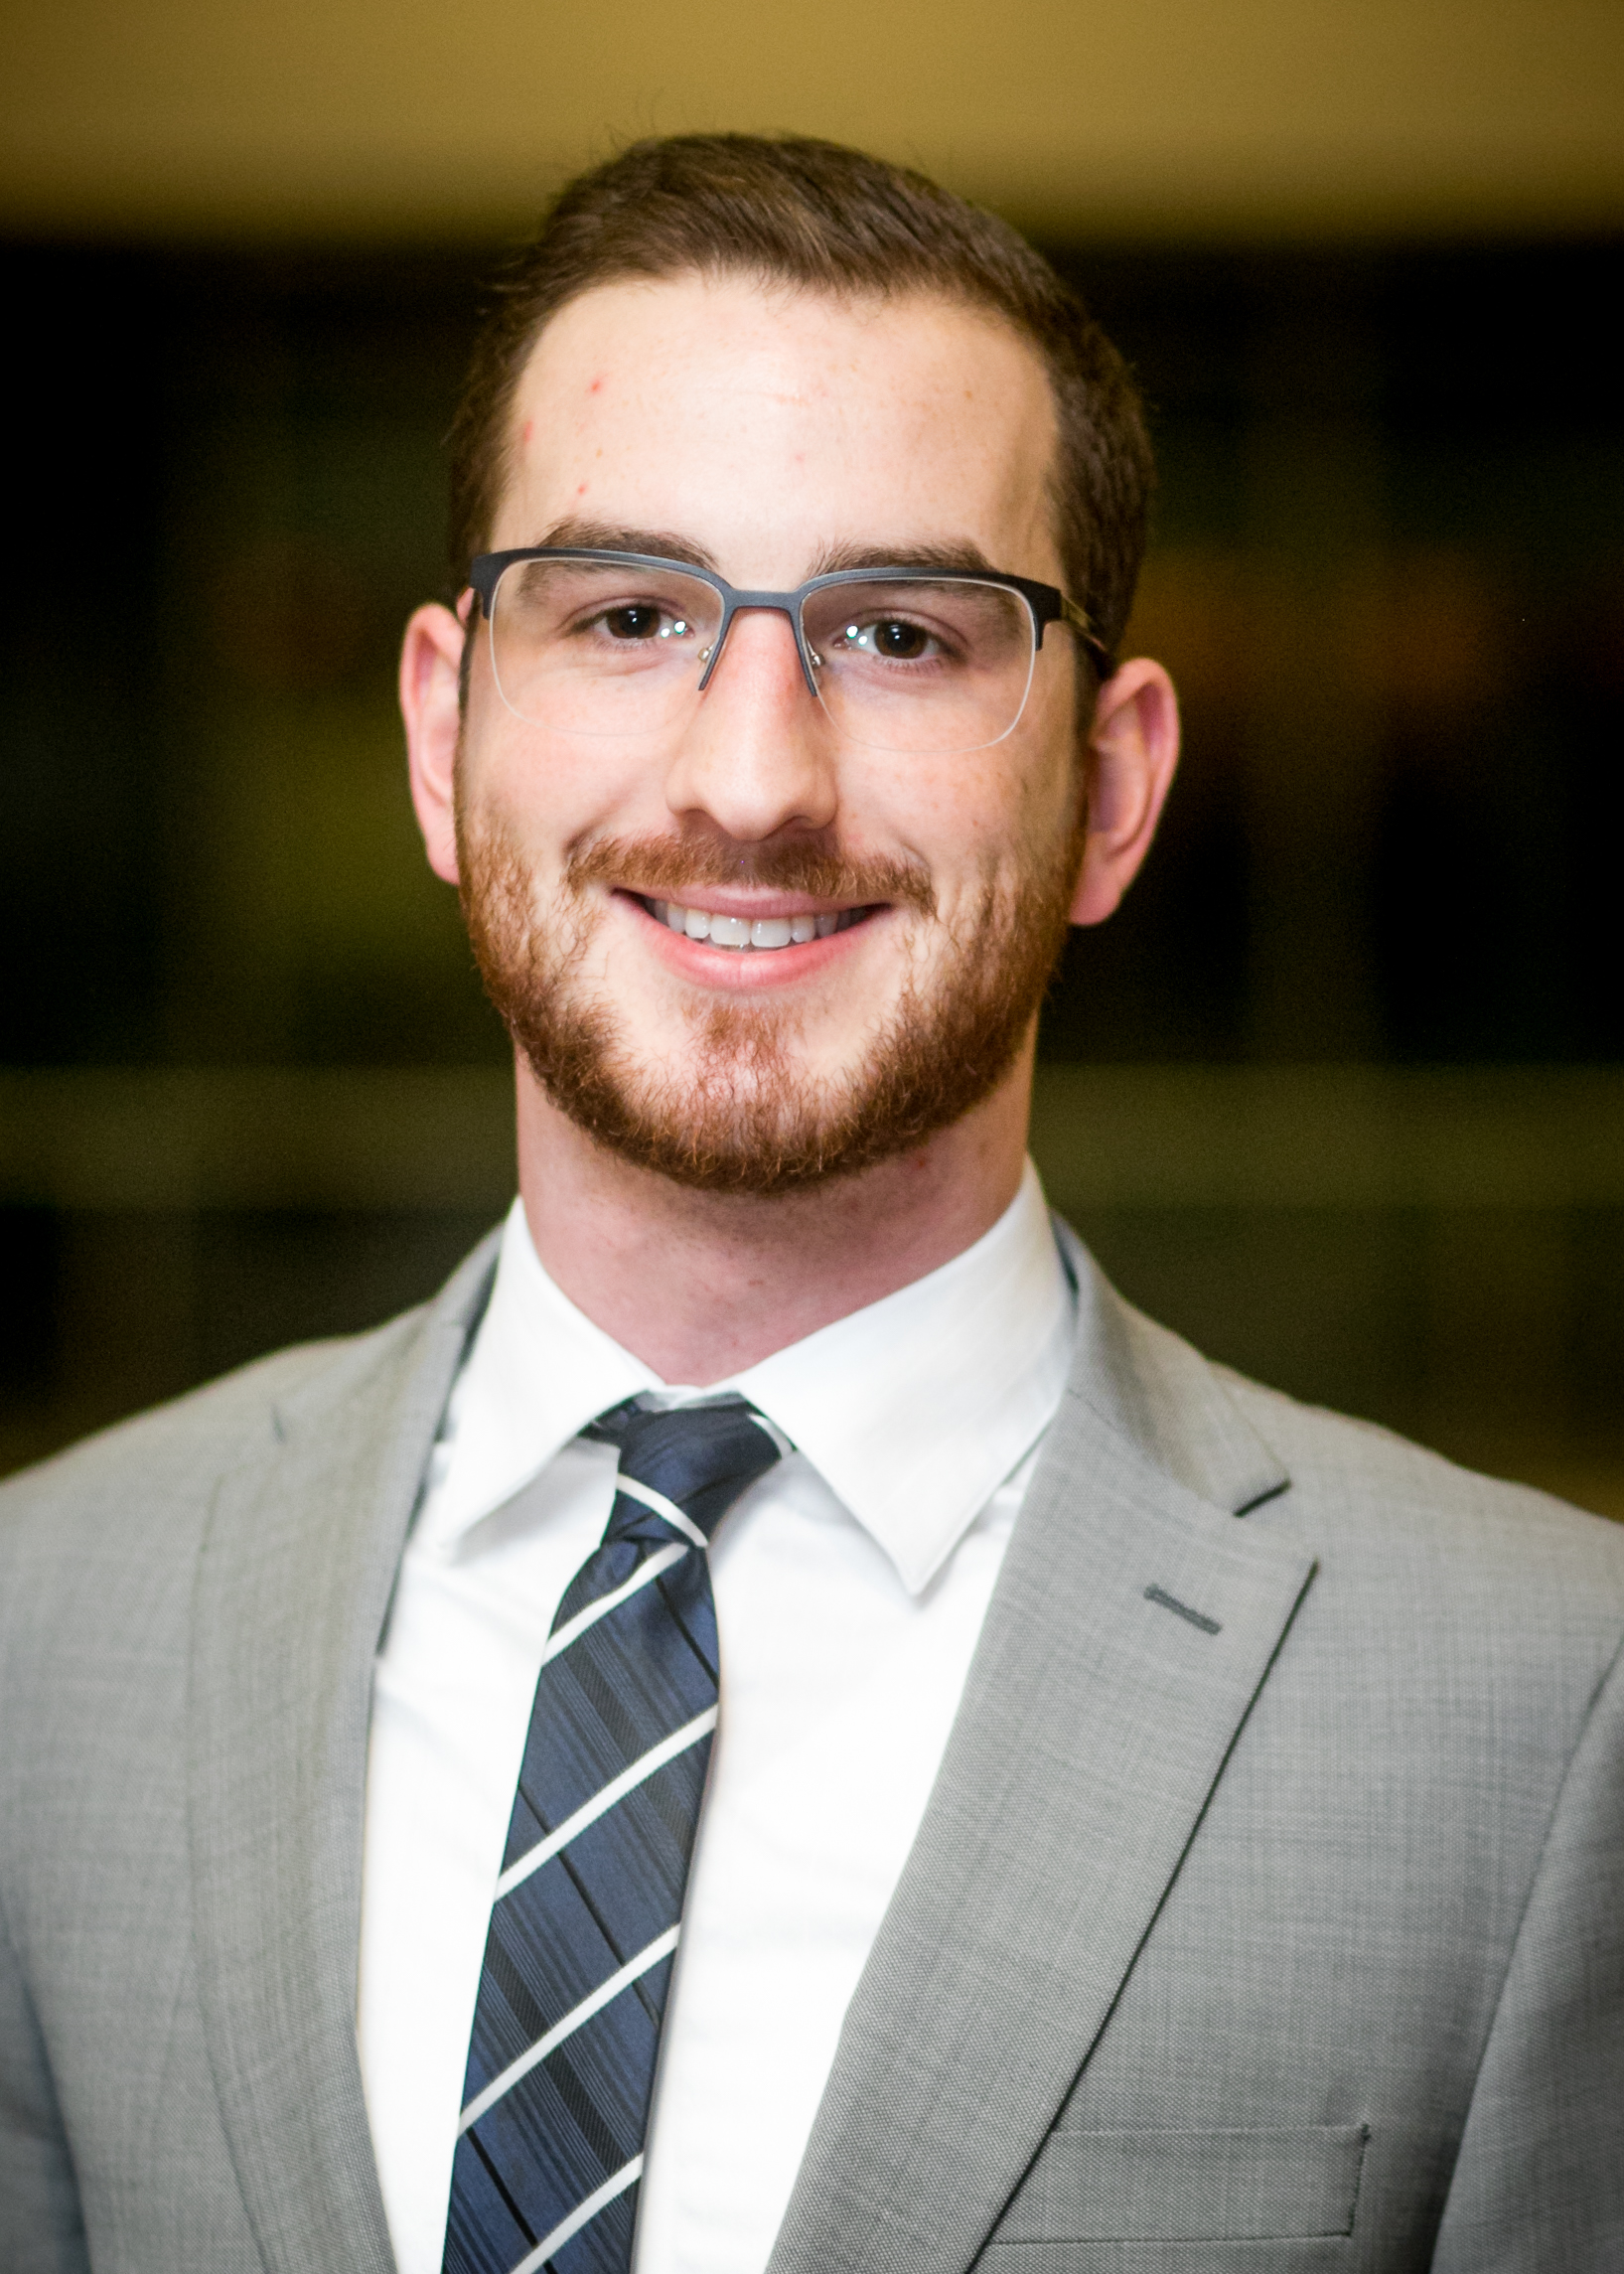 """VP CORPORATE RELATIONS   Chris is a fourth year Bachelor of Commerce student concentrating in accounting. This year he is excited to take on the role of Director of Corporate Relations. He is passionate about commerce and is determined to build a strong network within the business community to provide students with opportunities to strive in a professional environment. Chris believes that the impact we make and experiences we provide for students today will shape the quality of our professionals tomorrow.     """"Try not to become a man of success. Rather become a man of value."""" - Albert Einstein"""